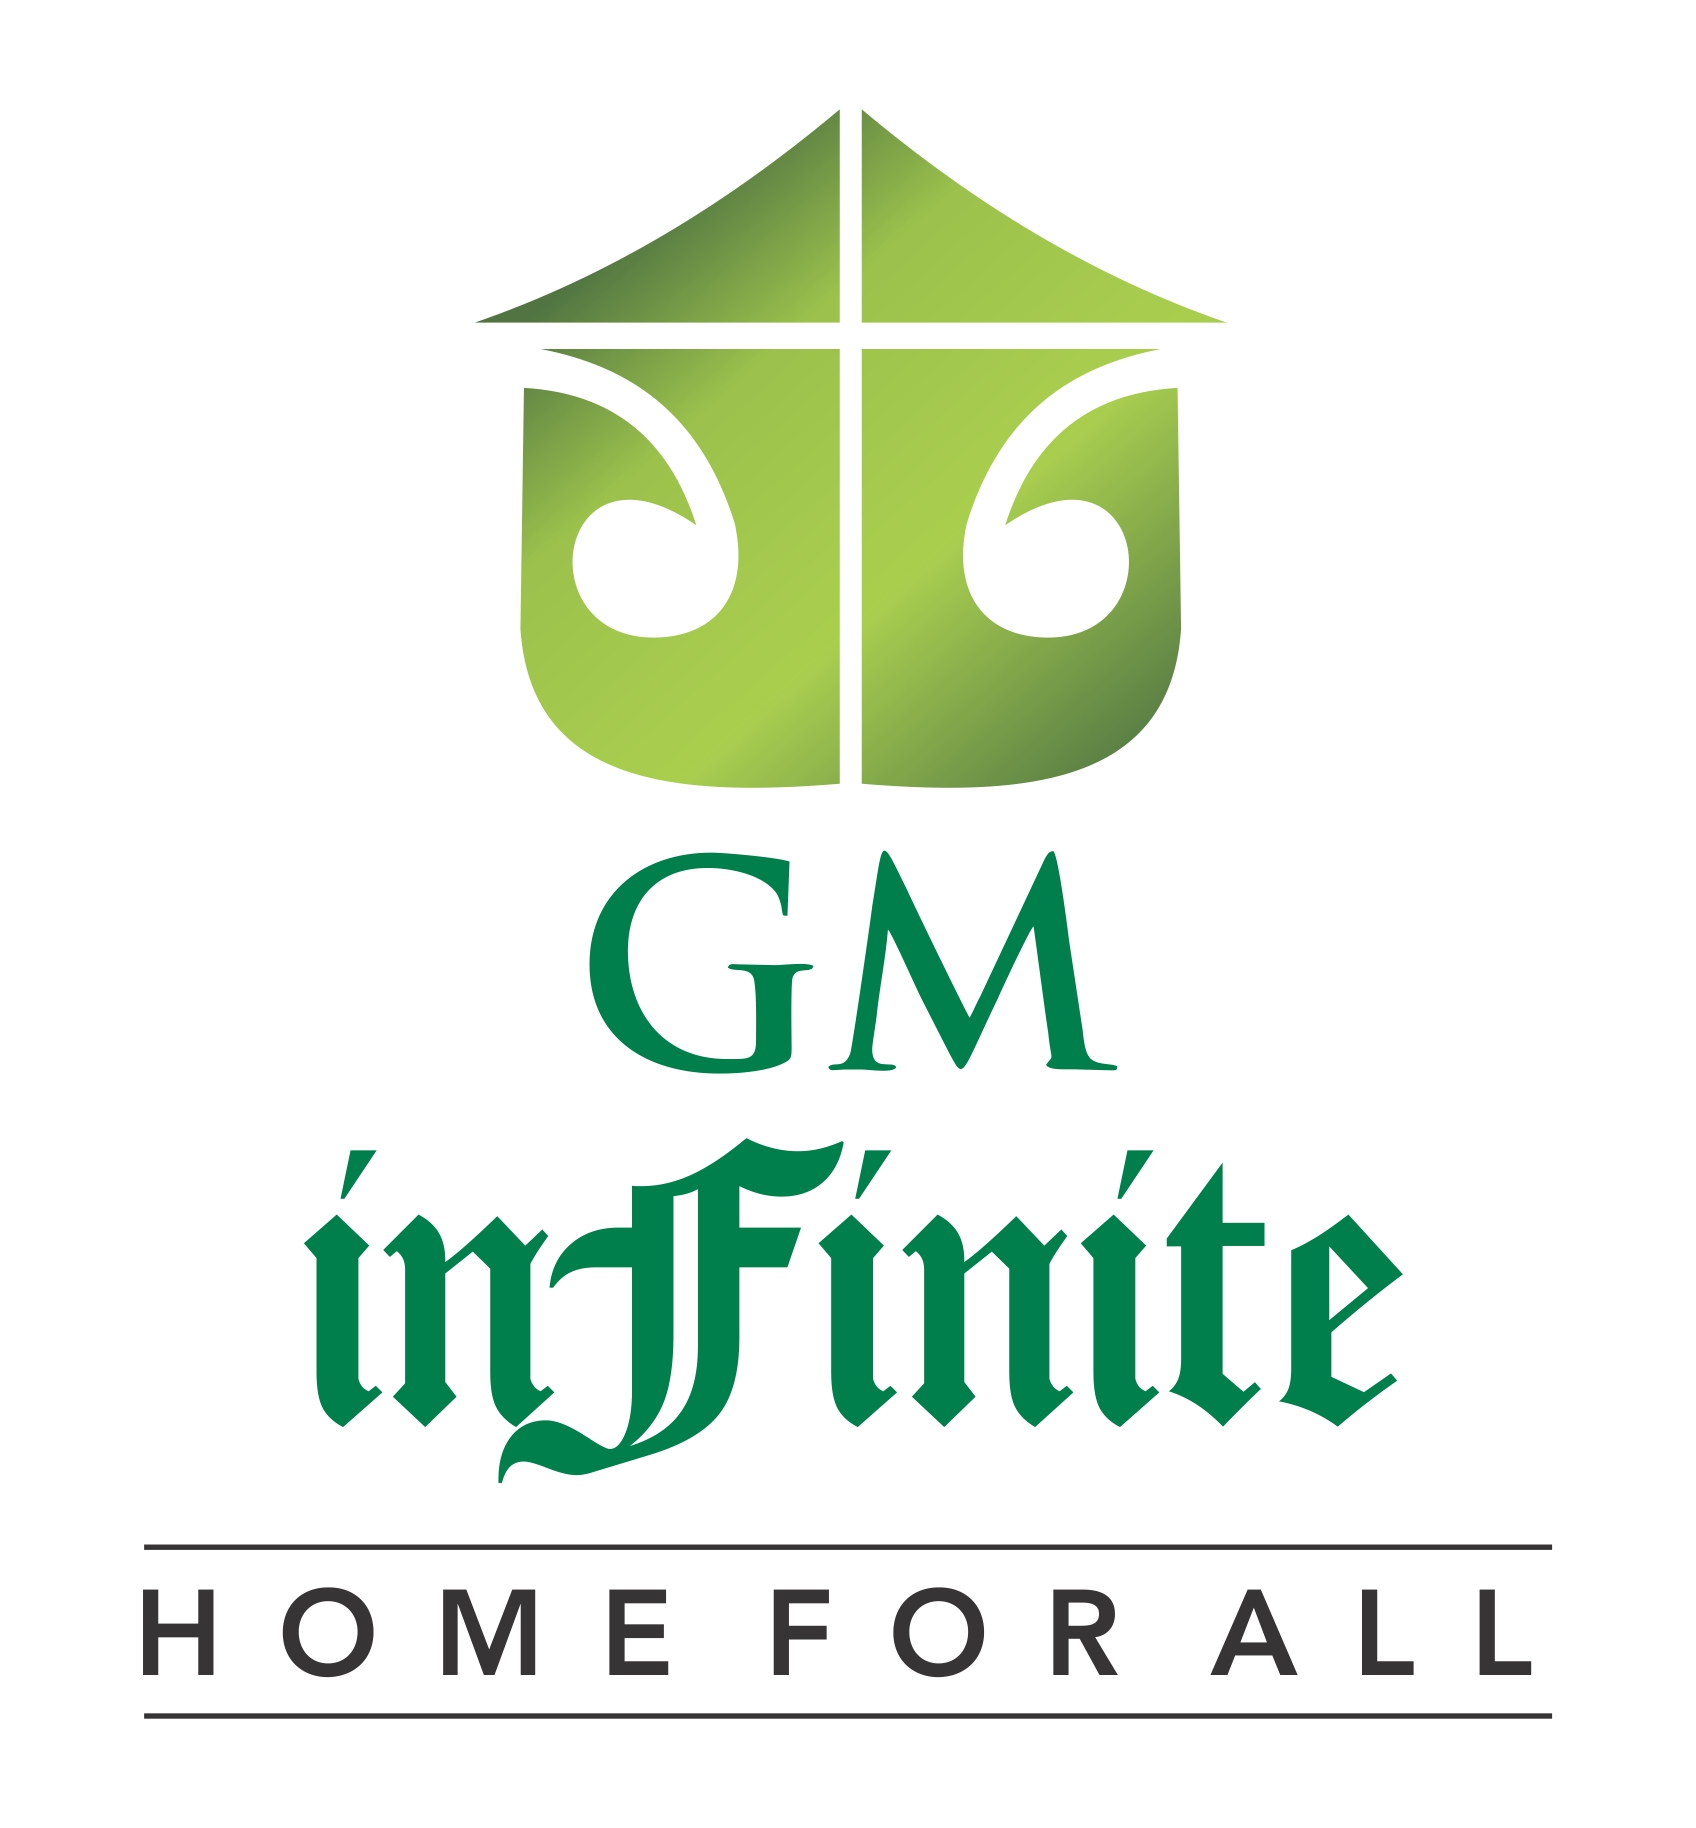 GM Infinite Dwelling (India) Pvt. Ltd